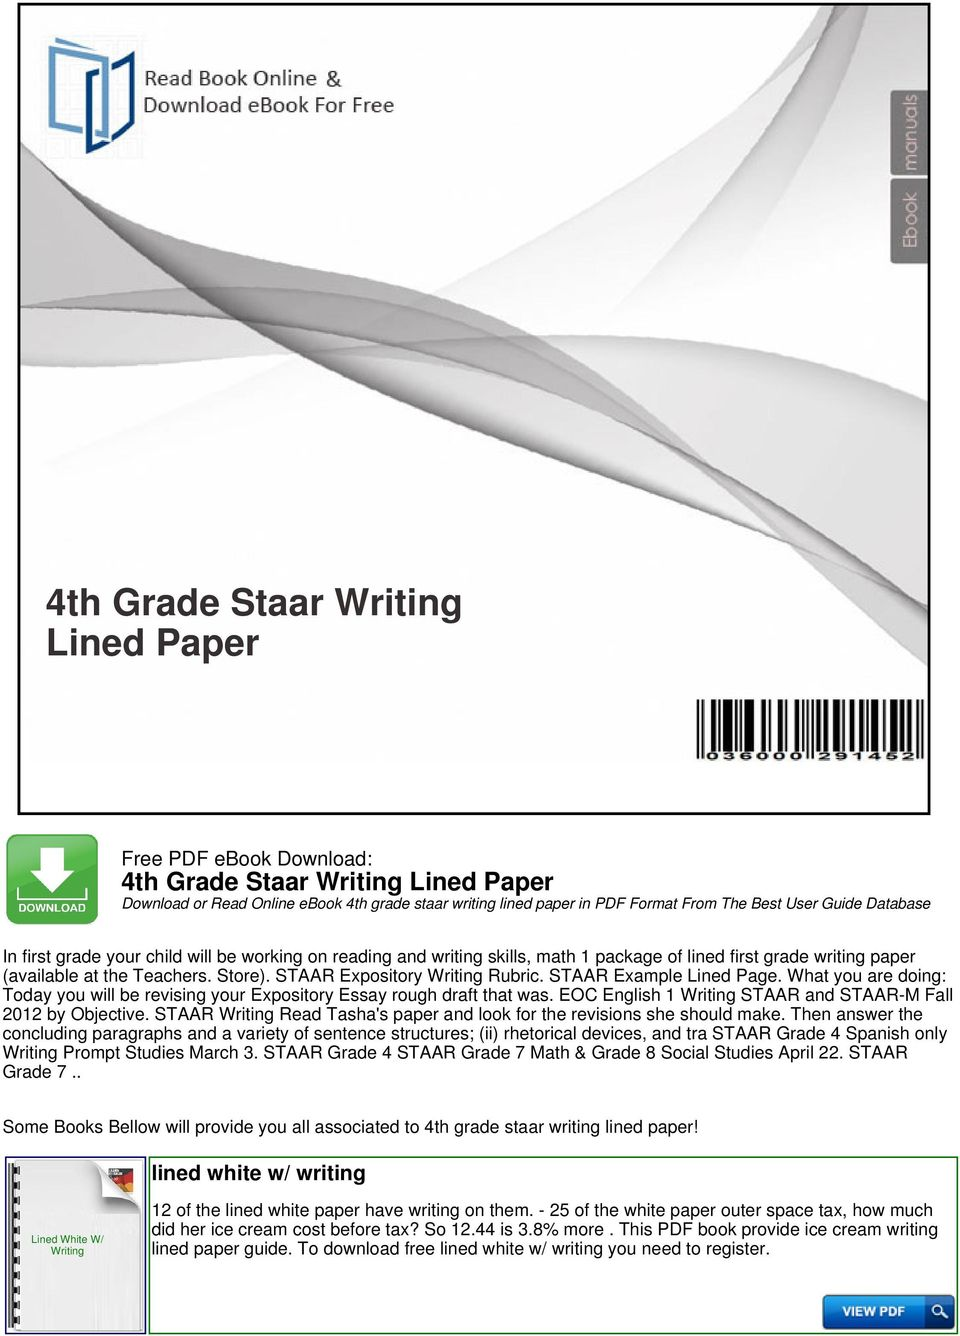 th grade staar writing lined paper pdf staar example lined page what you are doing today you will be revising your